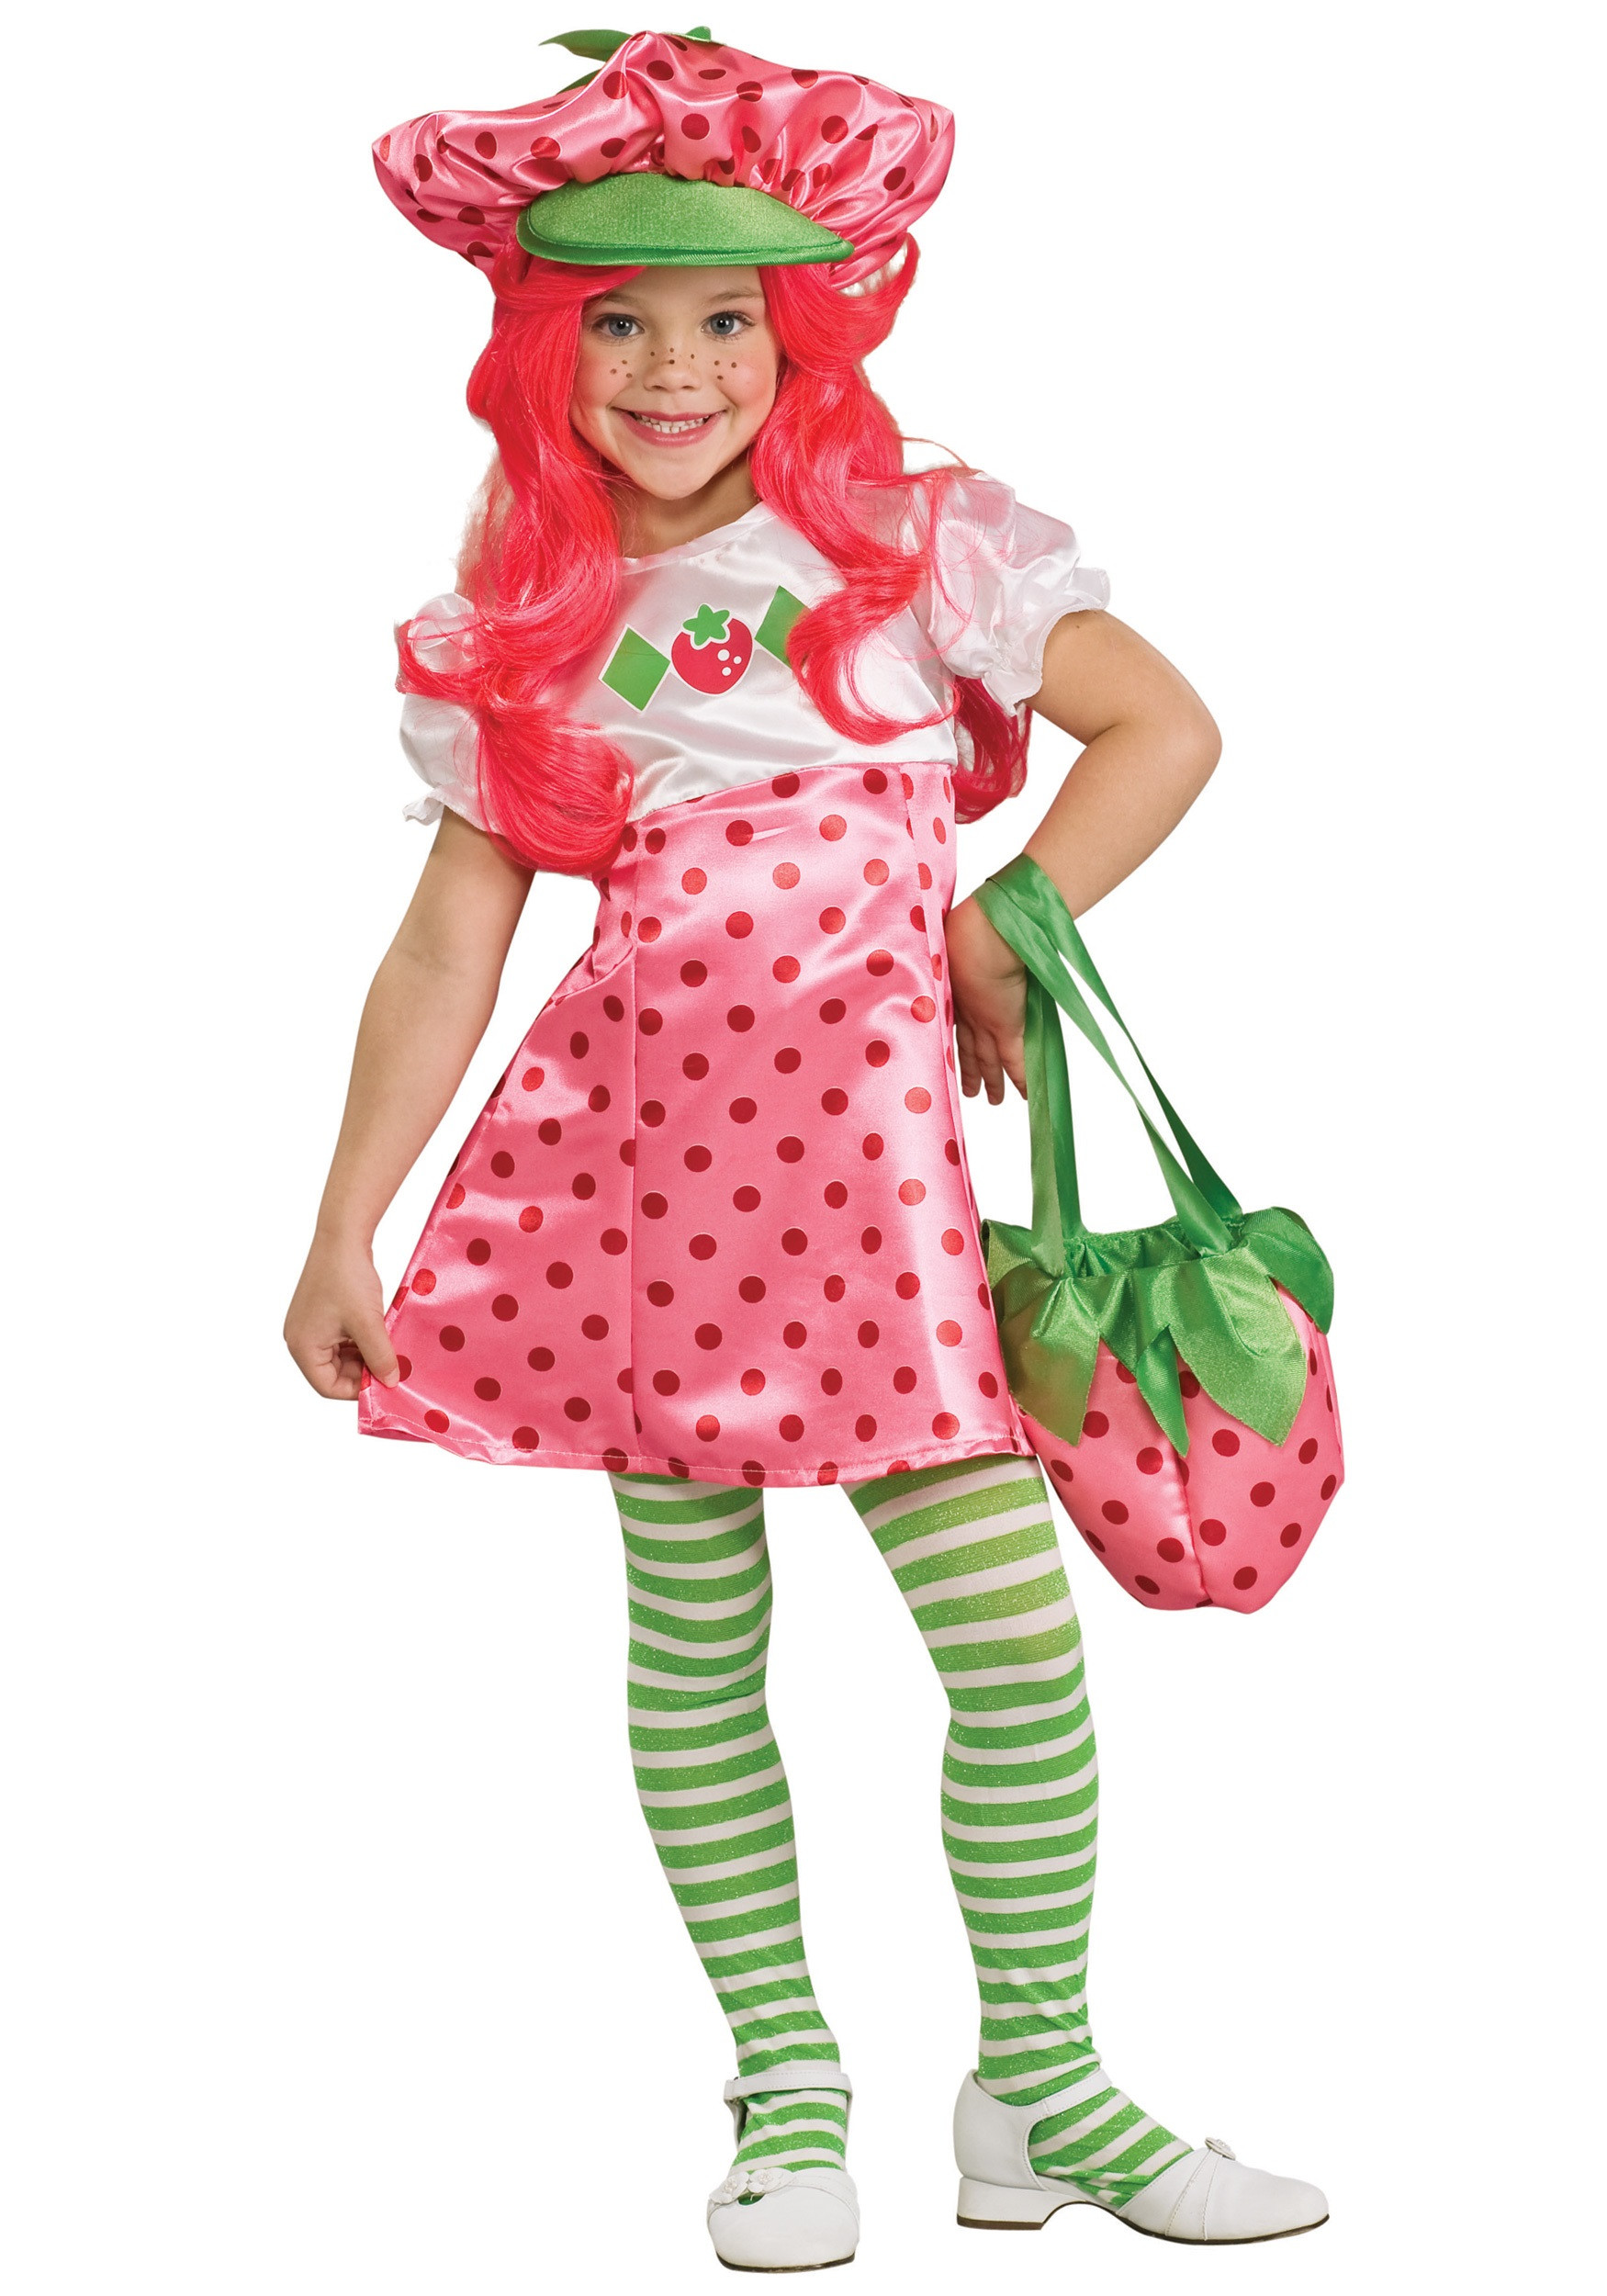 Strawberry Shortcake Halloween Costumes  Child Strawberry Shortcake Costume